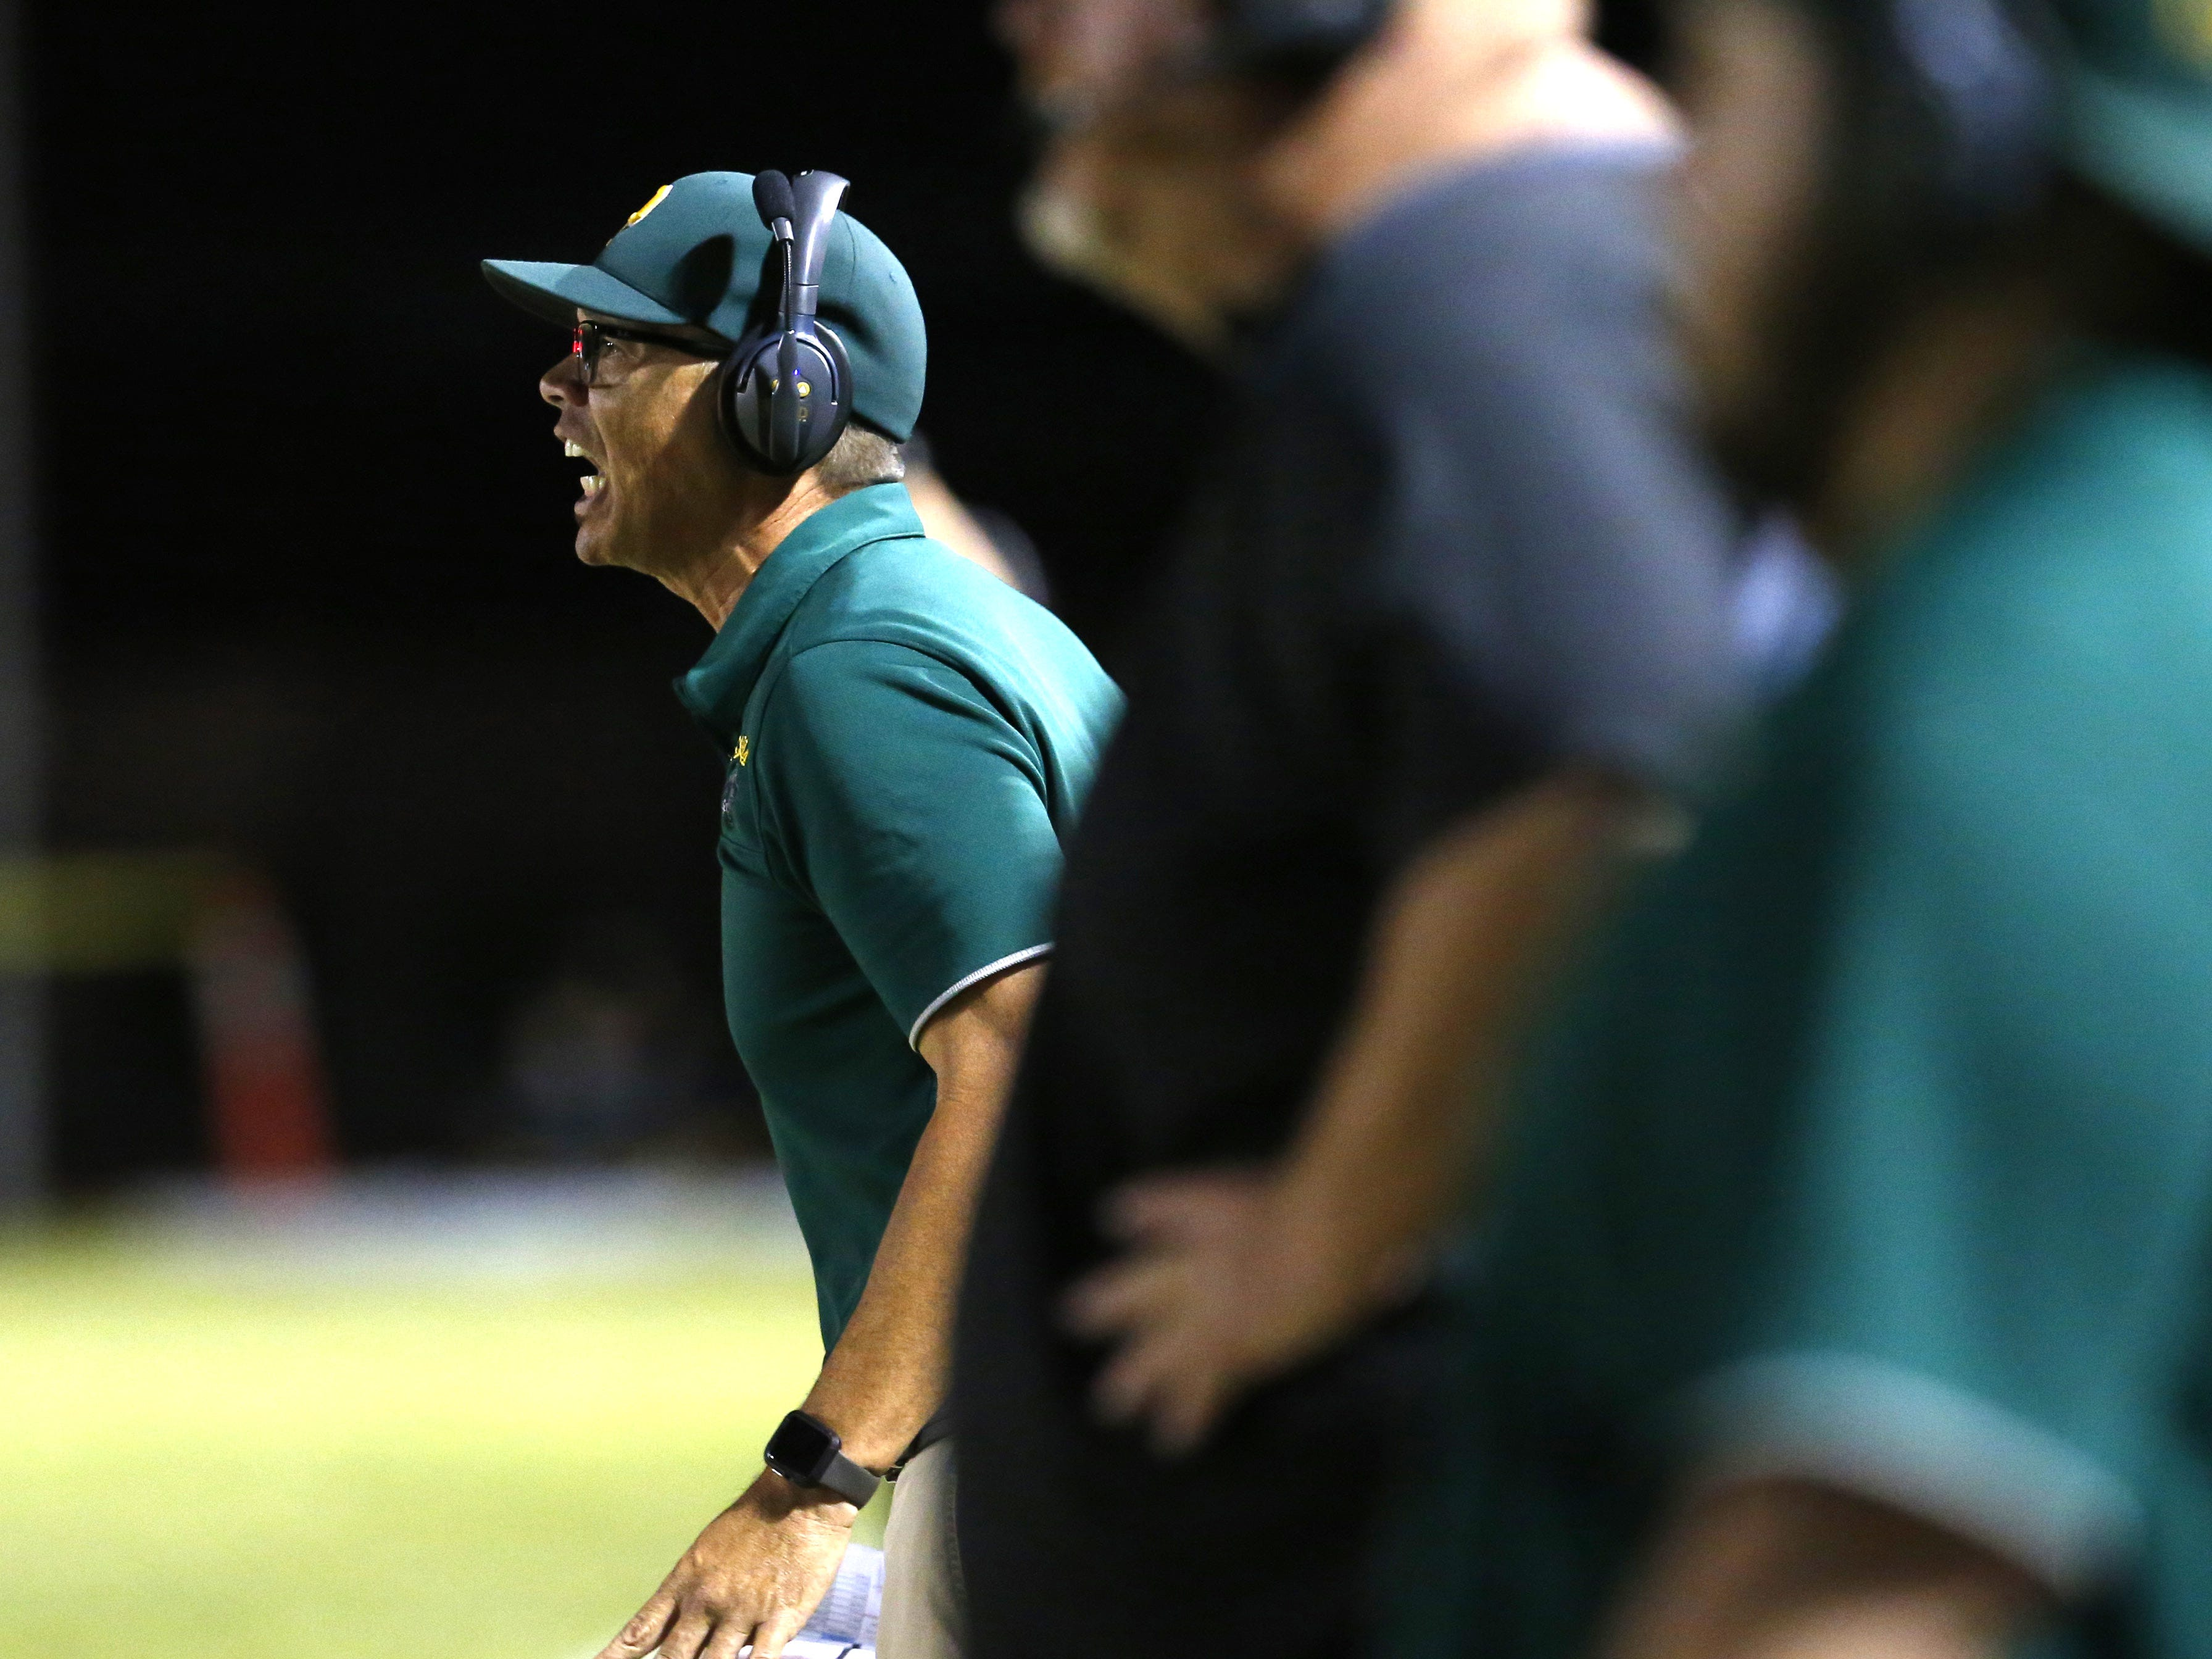 Peoria head coach Will Babb yells at his team during a football game against the Cactus at Peoria High on October 26. #azhsfb